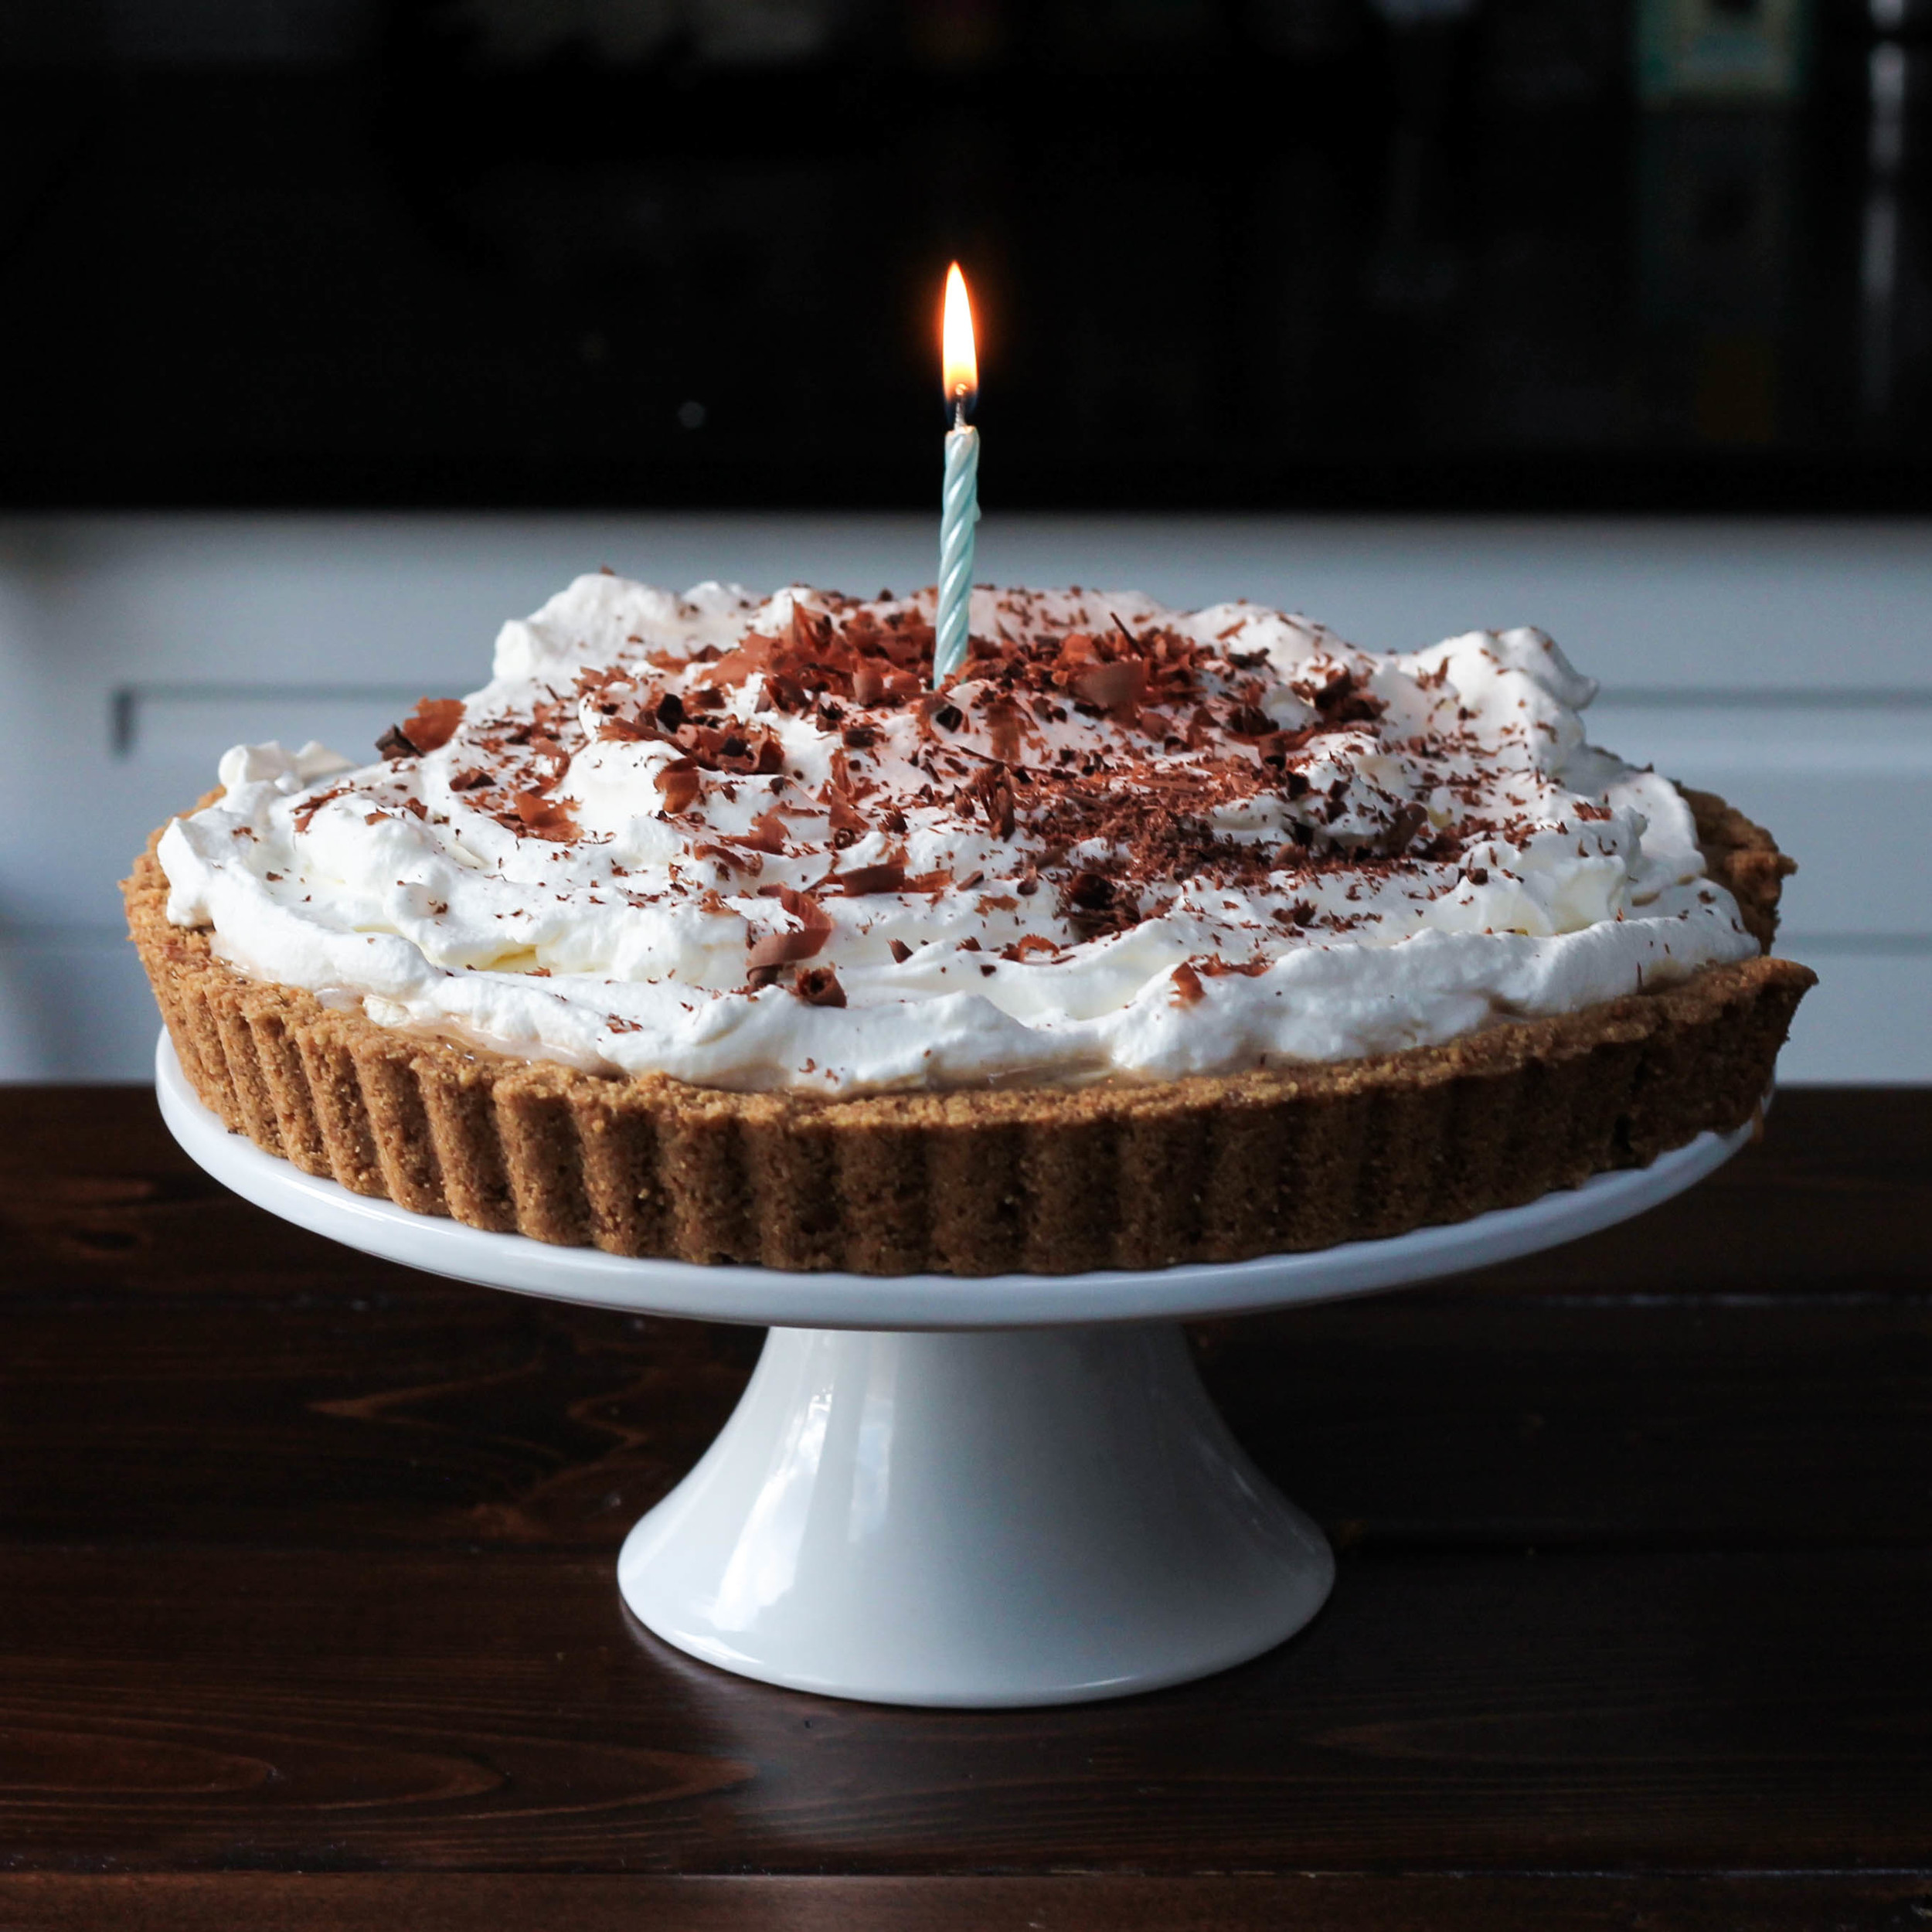 Banoffee Birthday Pie || A classic British inspired dessert! Digestive biscuit crust, dulce de leche (or caramel), banana, whipped cream + shaved chocolate. Toffee + Bananas are a dream come true! Easy to make and only six ingredients. || creamandhoney.ca